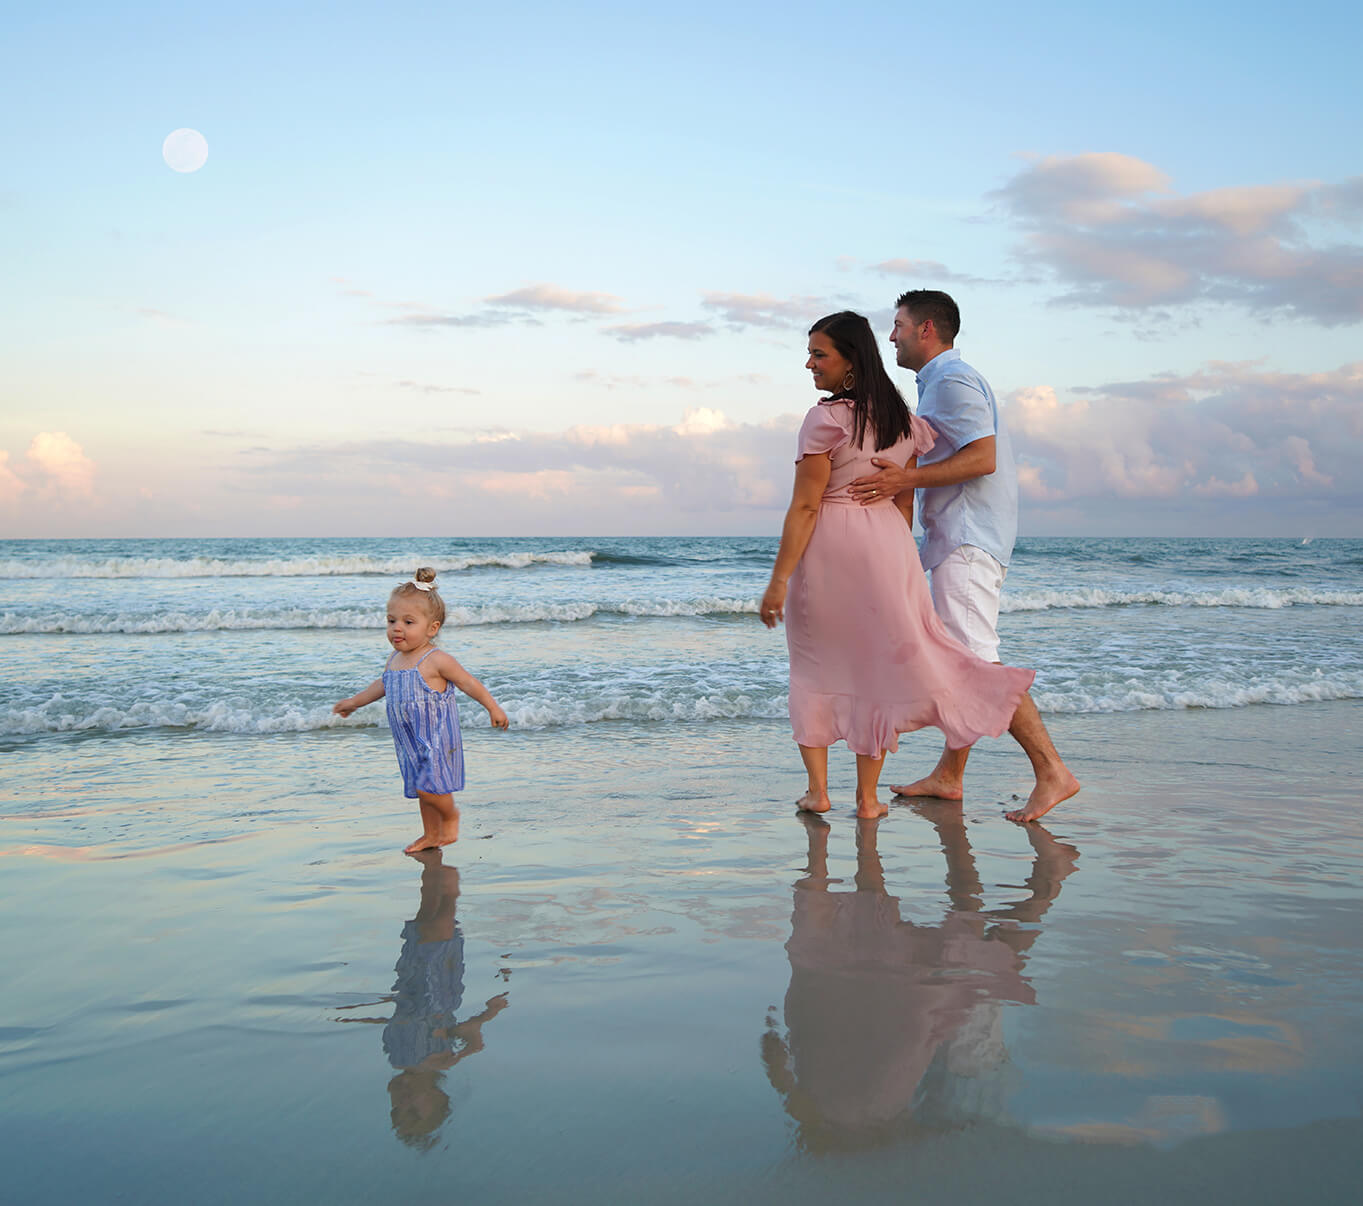 Sunset Beach Photography with Island Life HH Photography